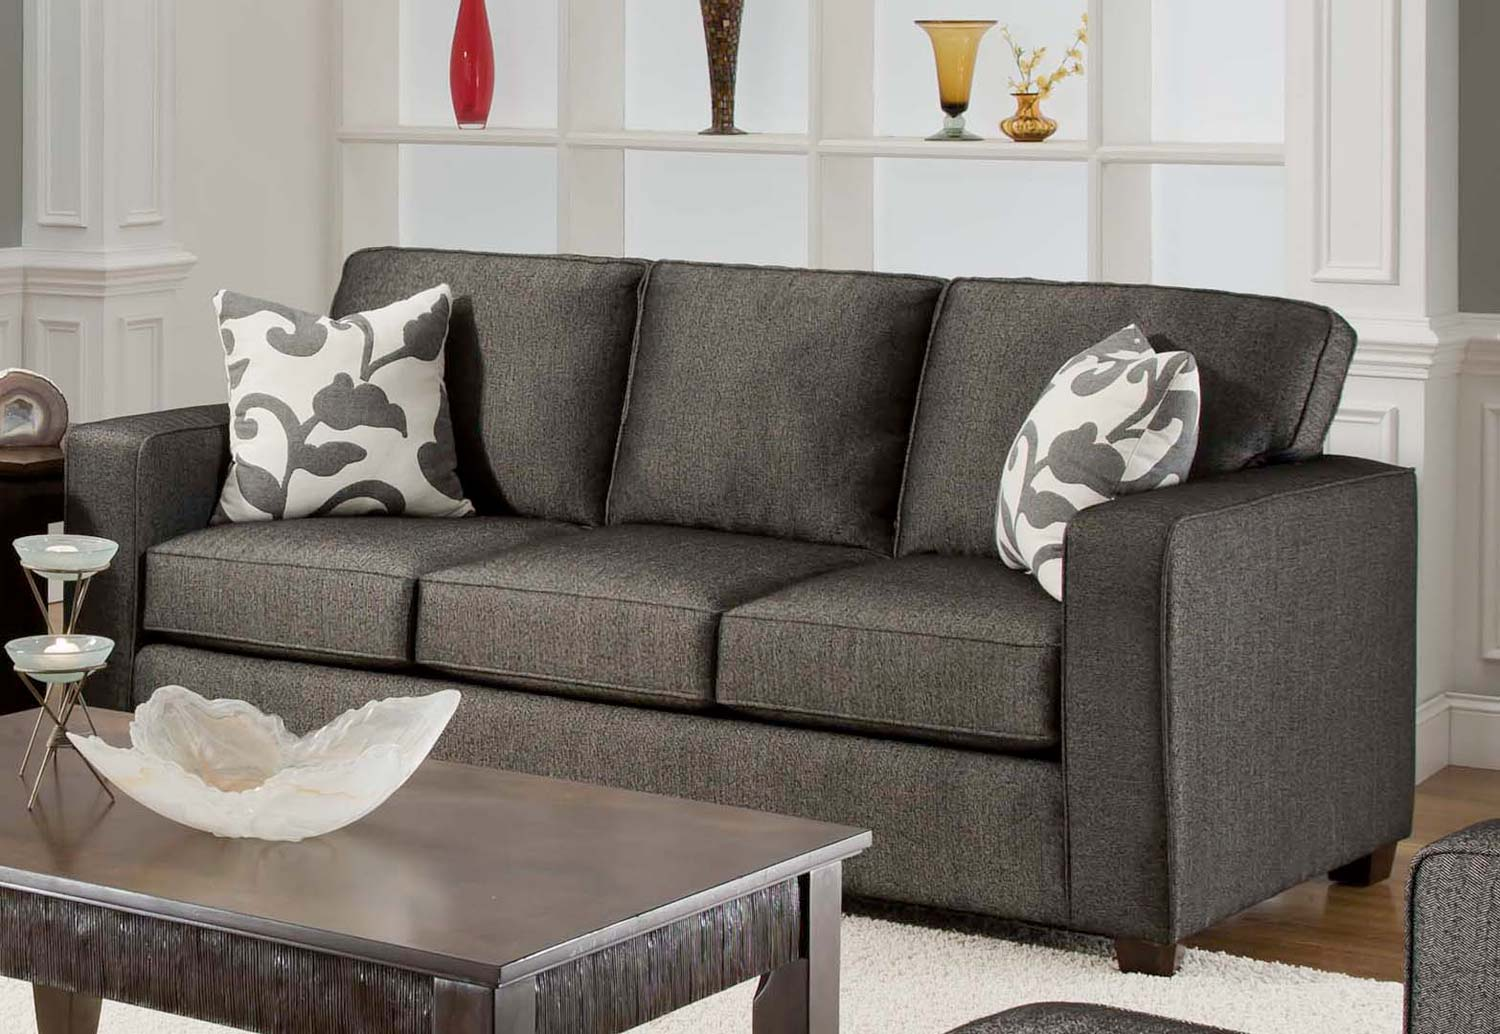 Armen Living Calvin Sofa Set - Talbot Onyx Fabric